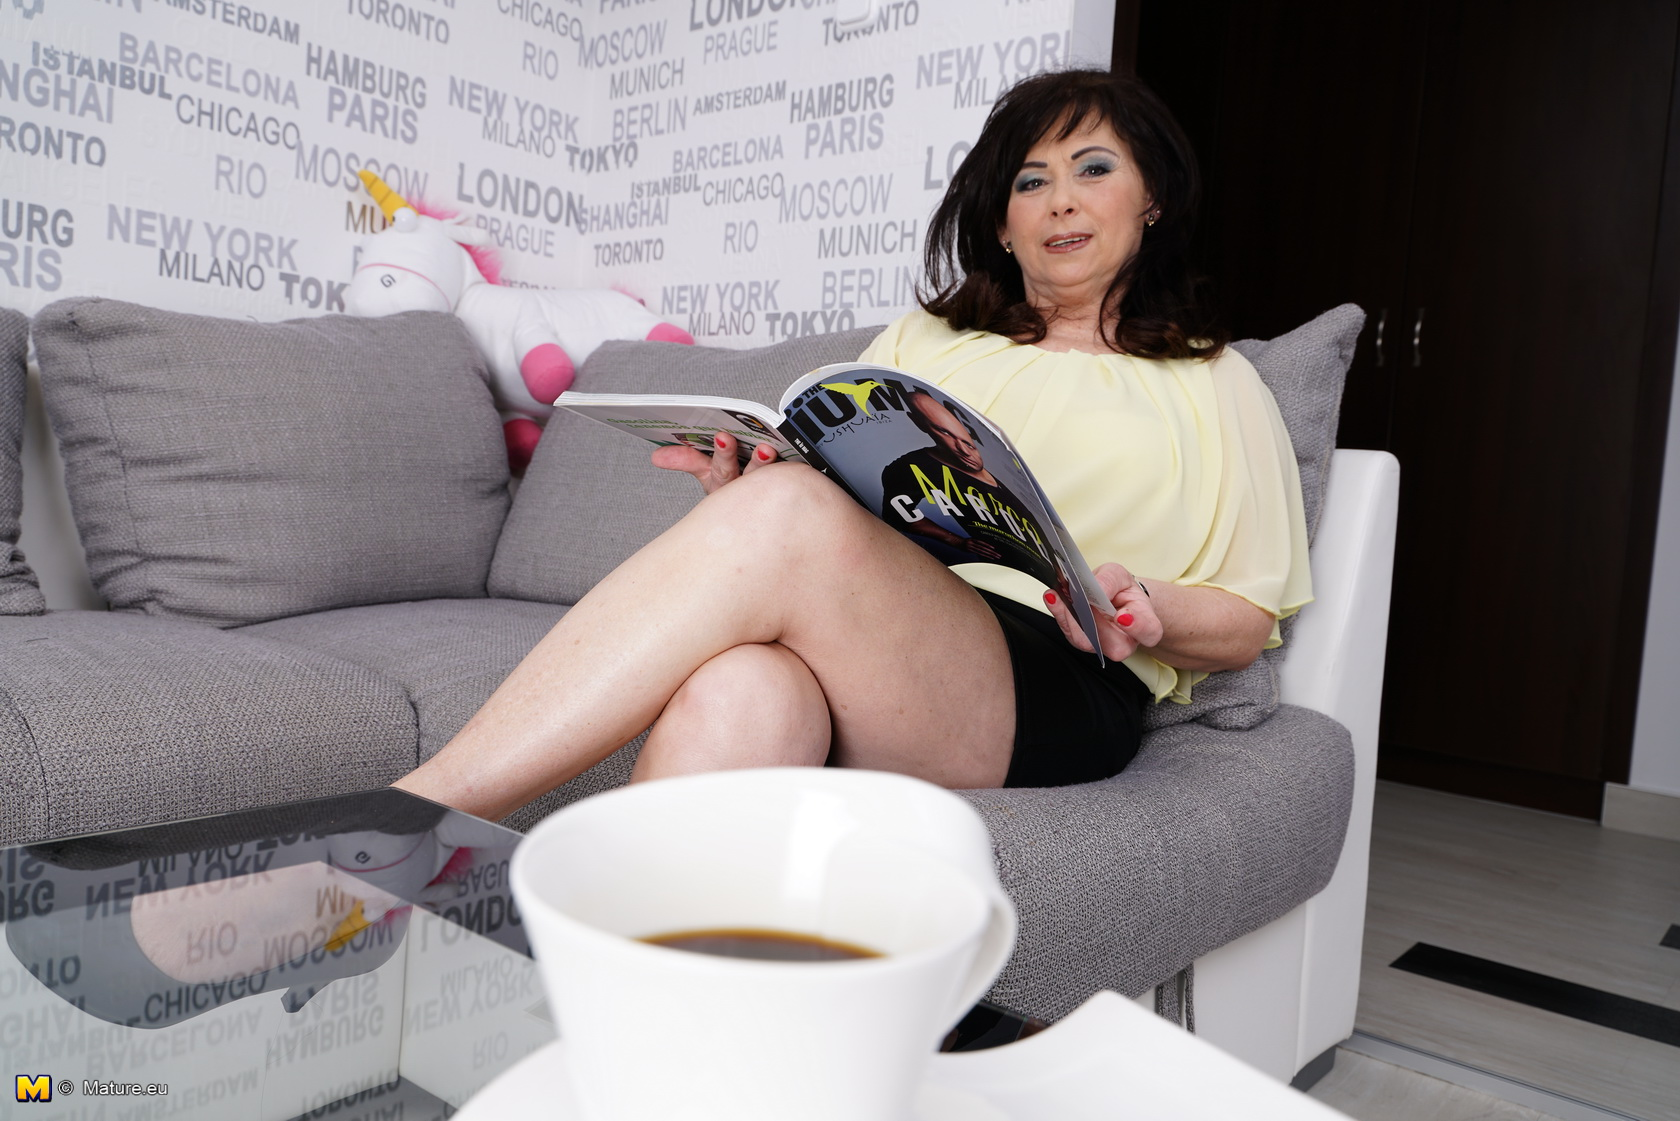 Experienced 64 years old golden ager girl opens her legs wide open